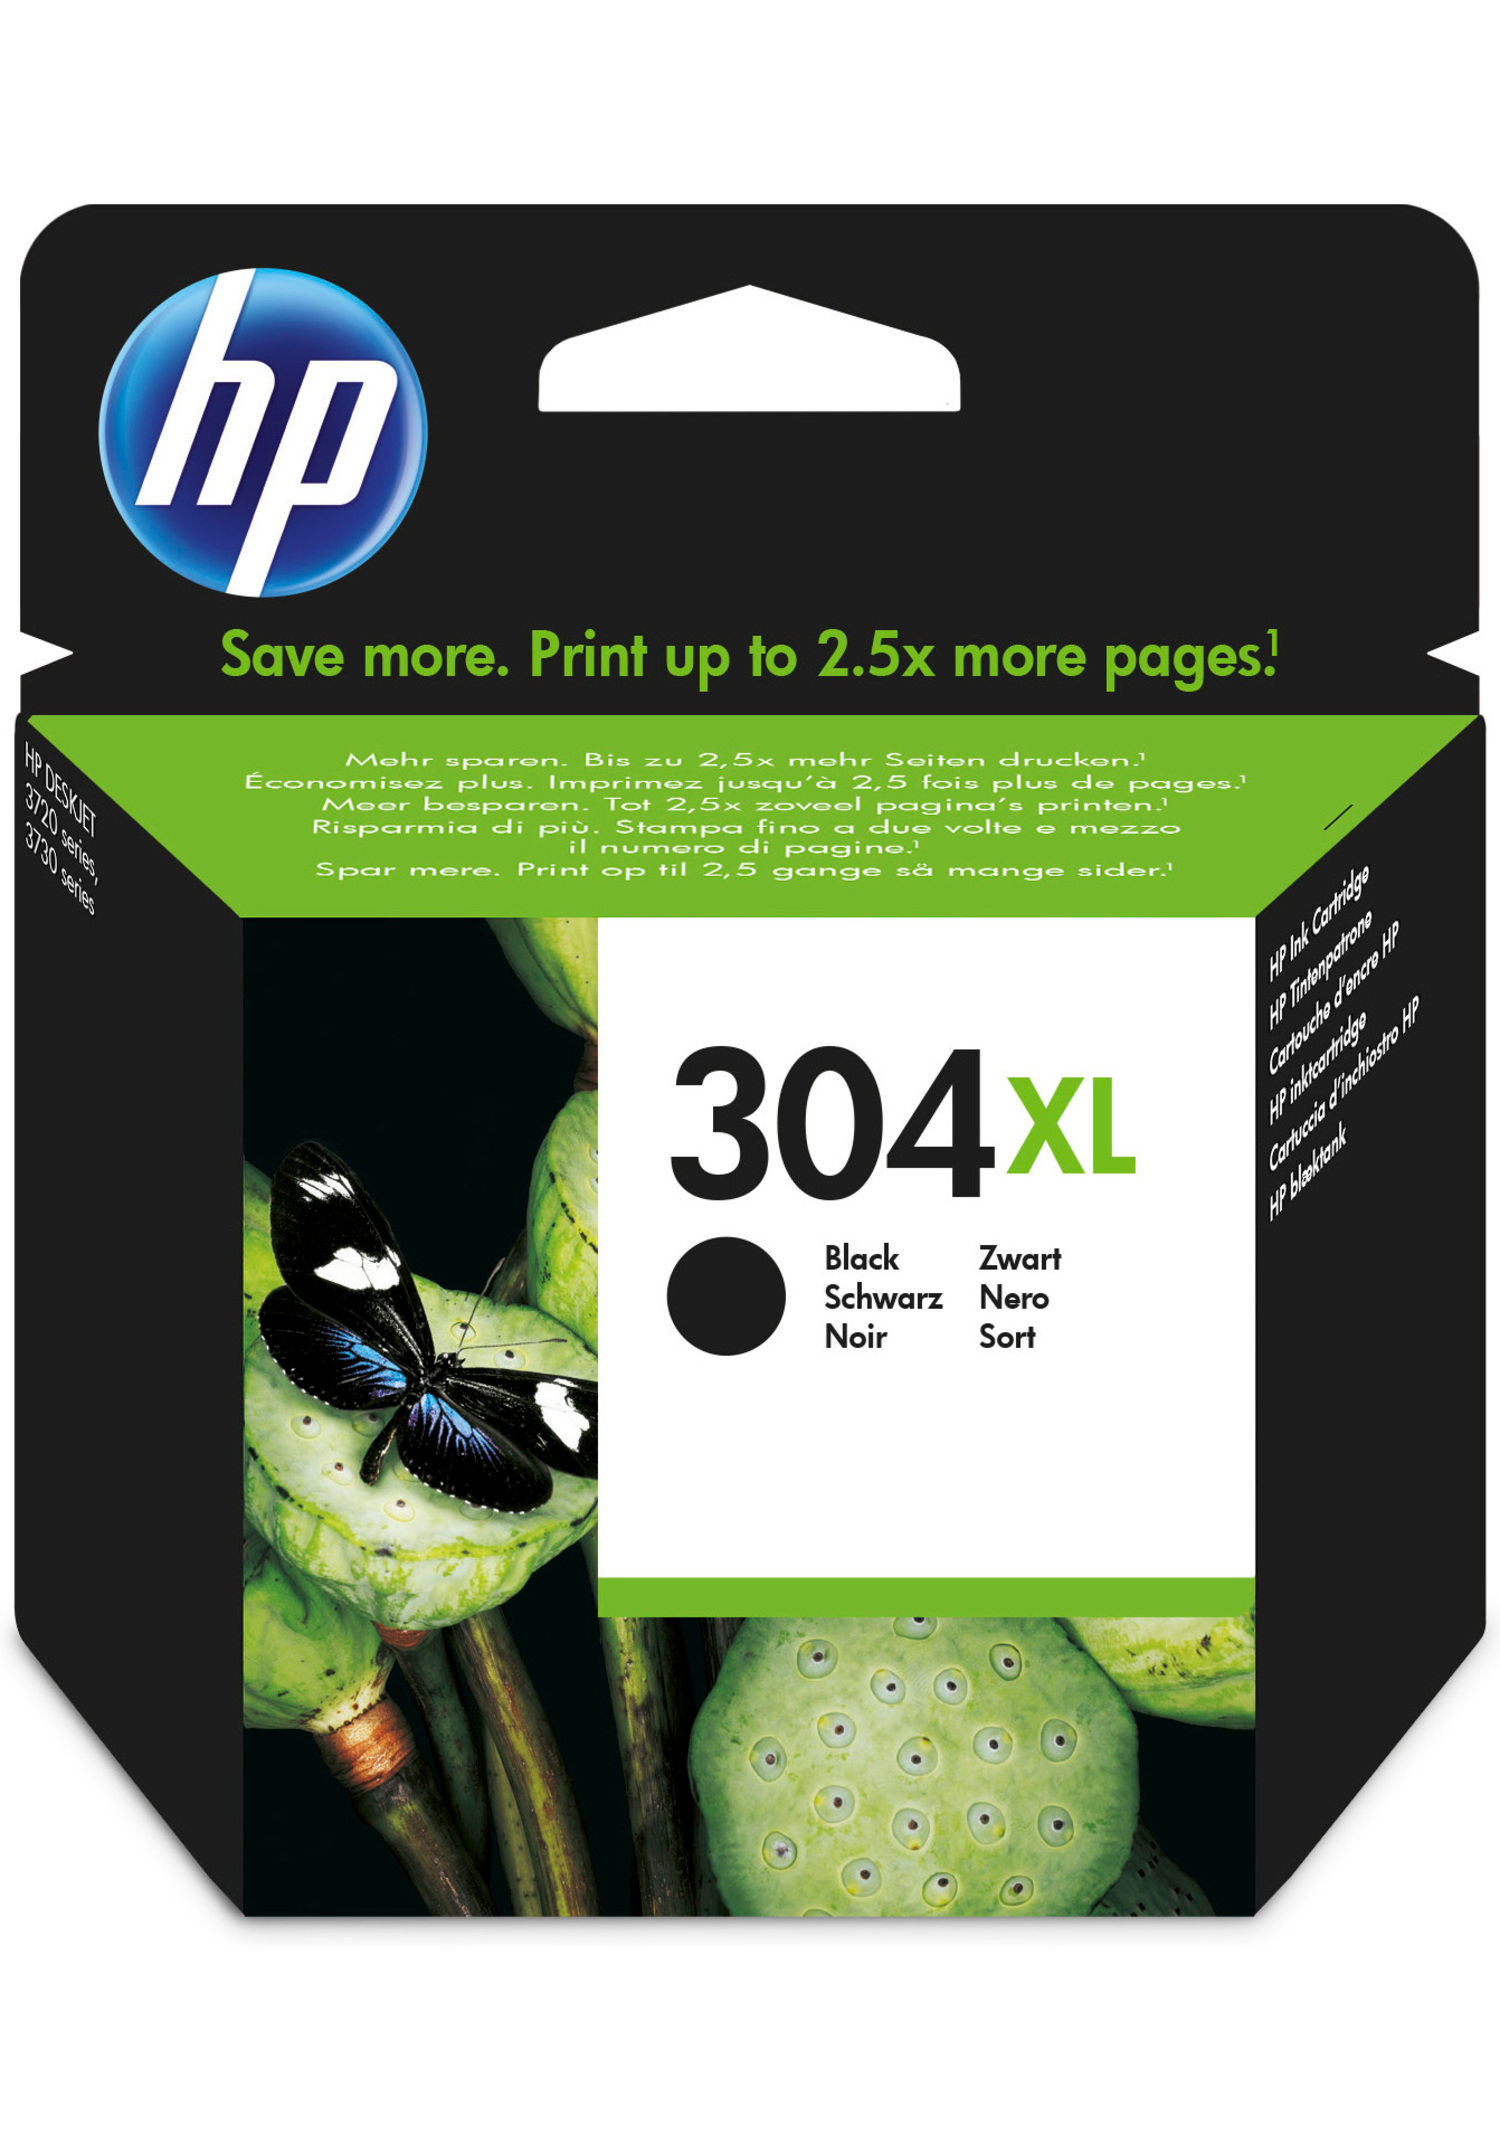 HP Hp 304xl Black Ink Cartridge N9k08ae - AD01